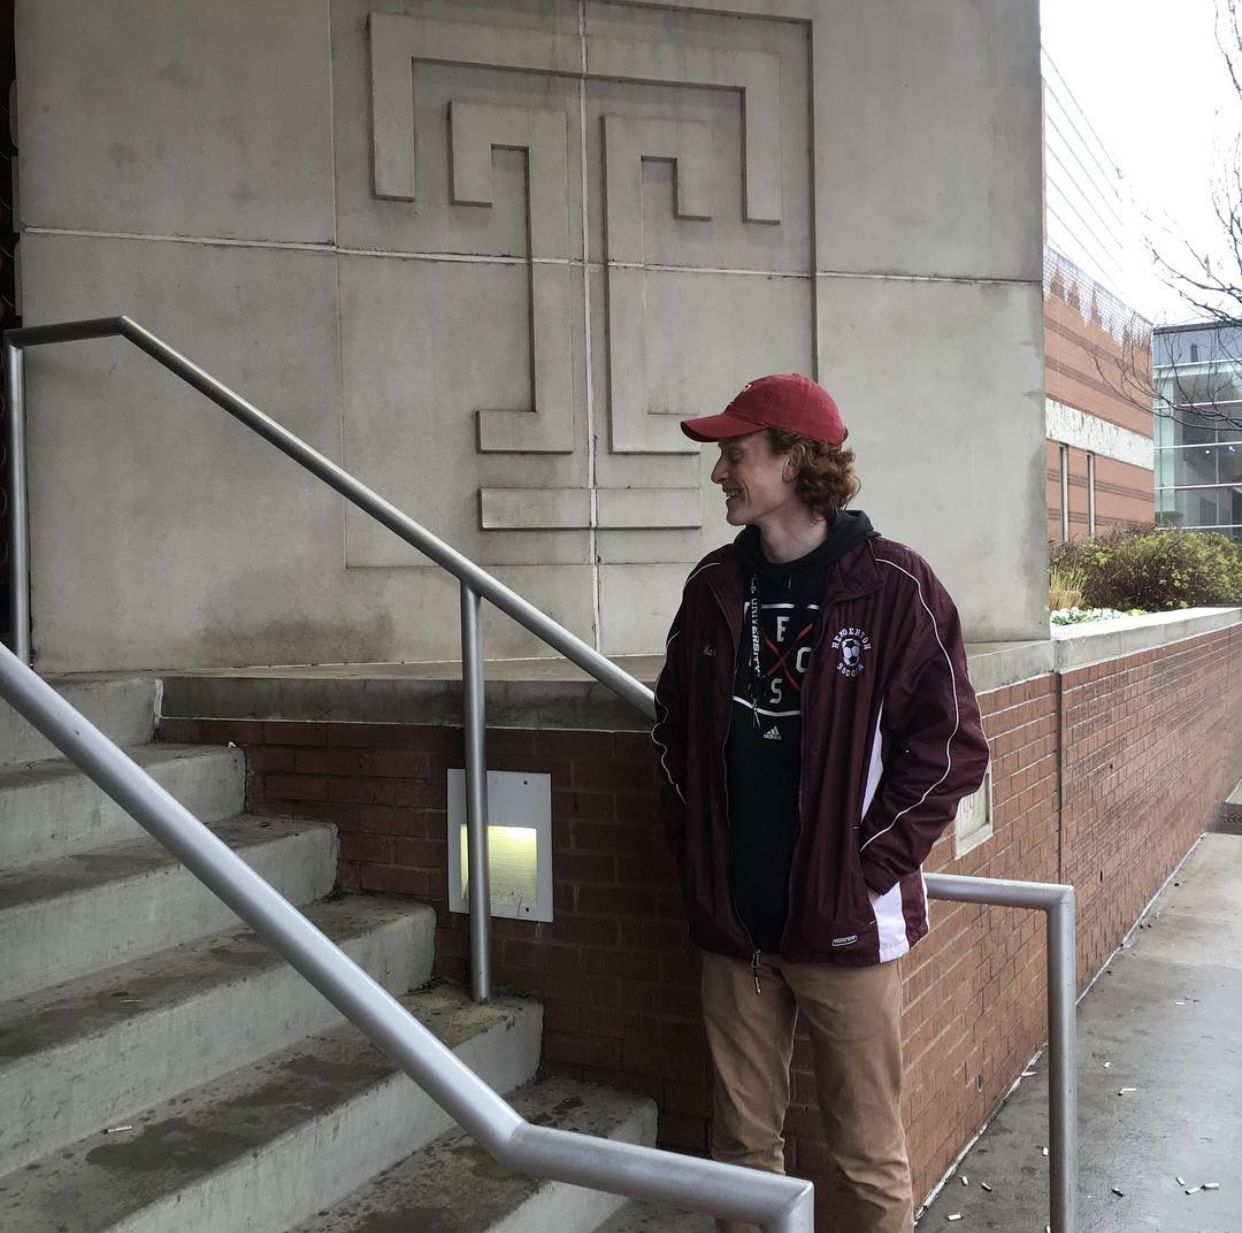 A College of Science and Technology student stands outside a building on campus.